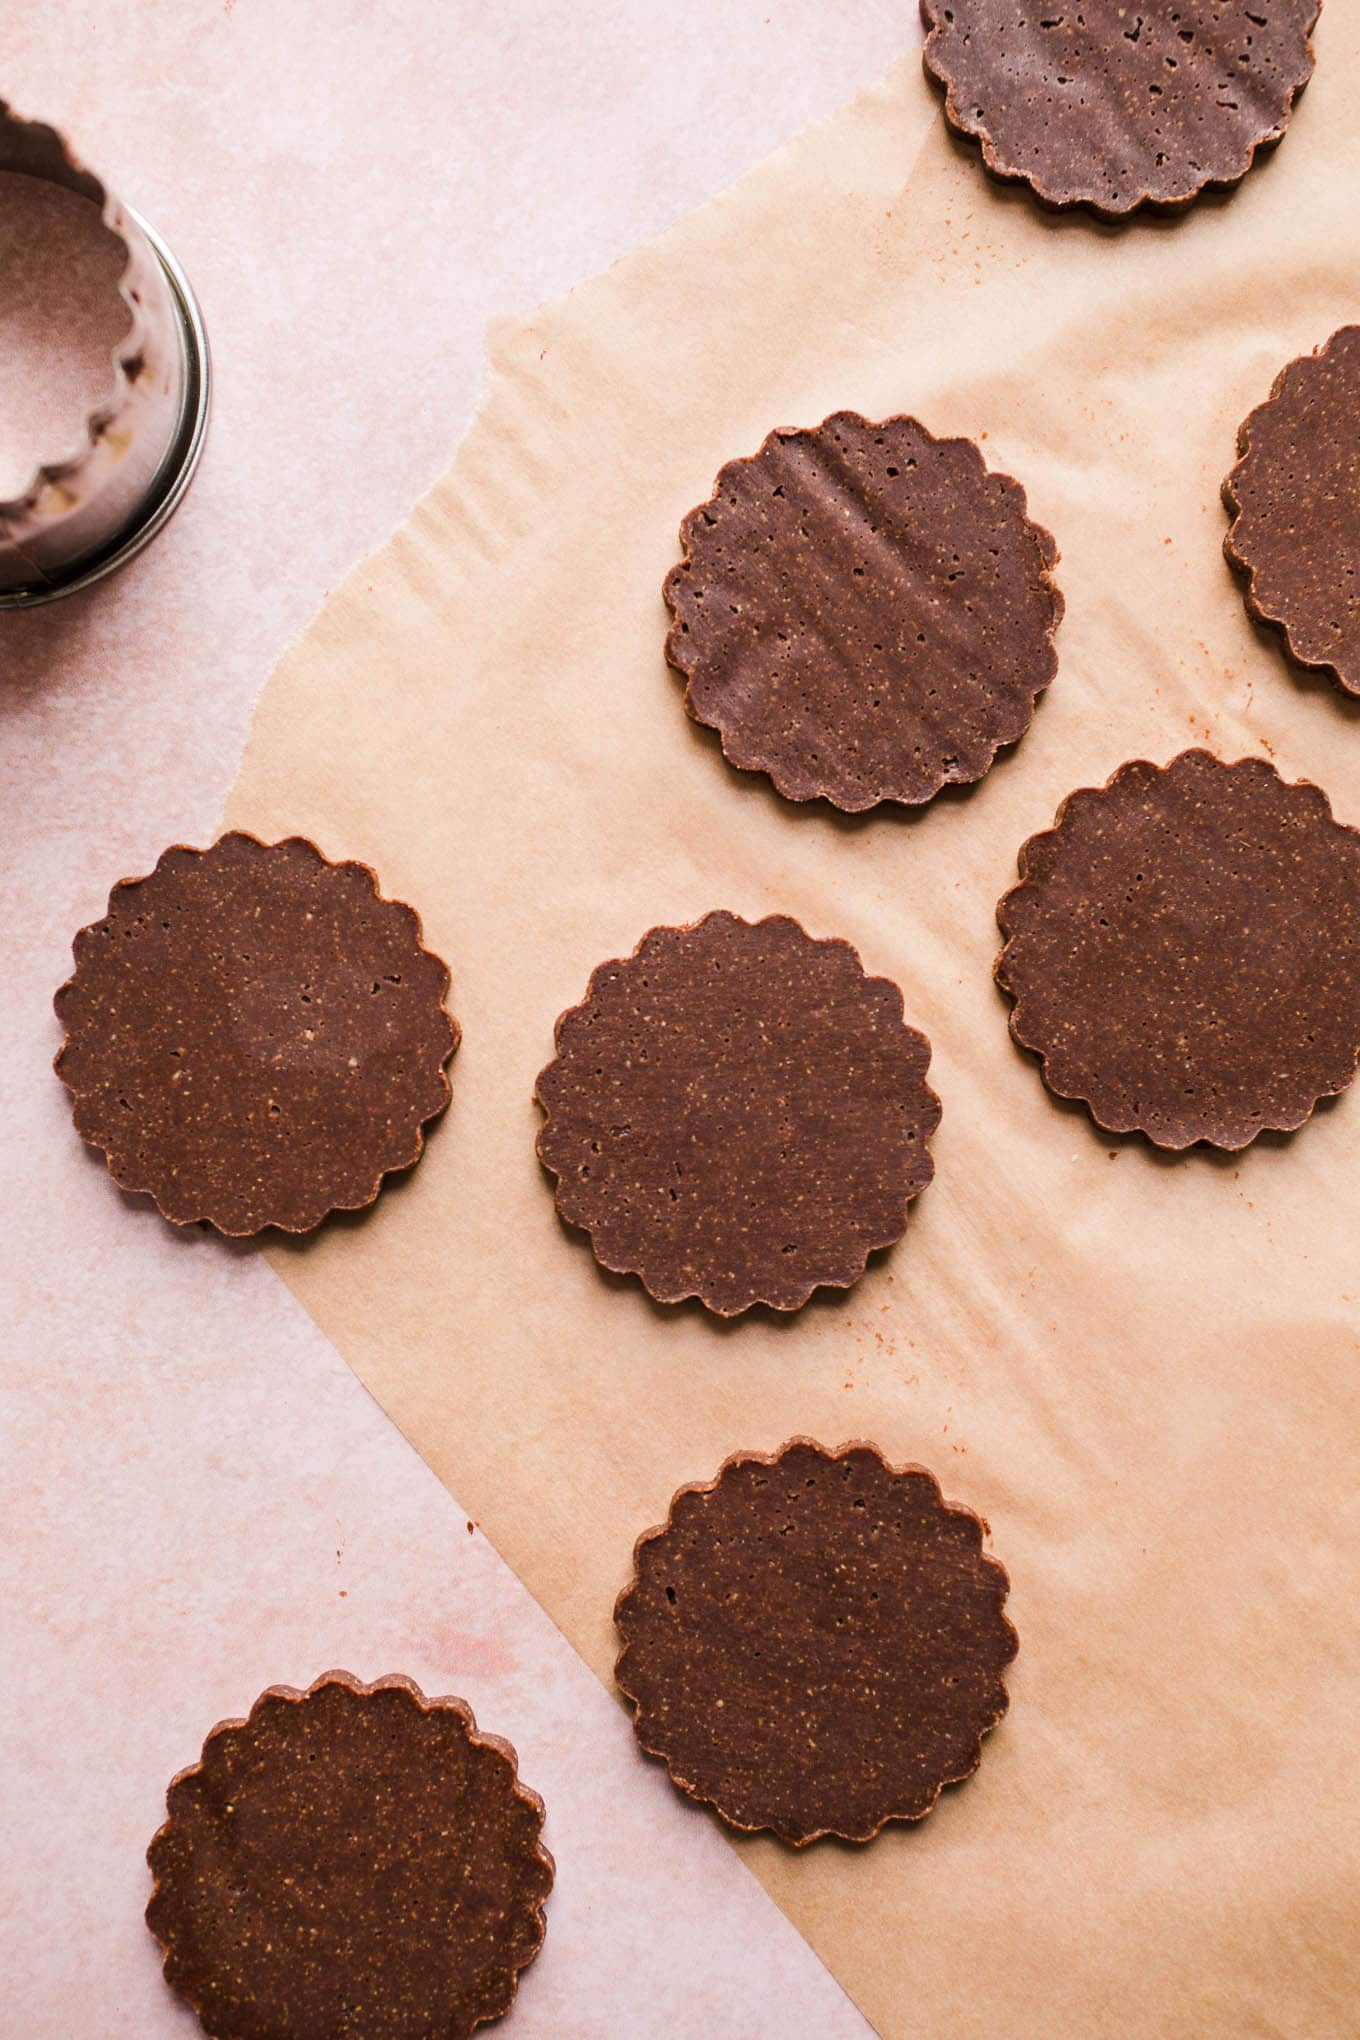 No Bake Chocolate Maca Cookies made with almond flour, cacao powder, maple syrup, coconut oil, and superfood maca powder. Gluten-free, vegan, refined sugar-free.